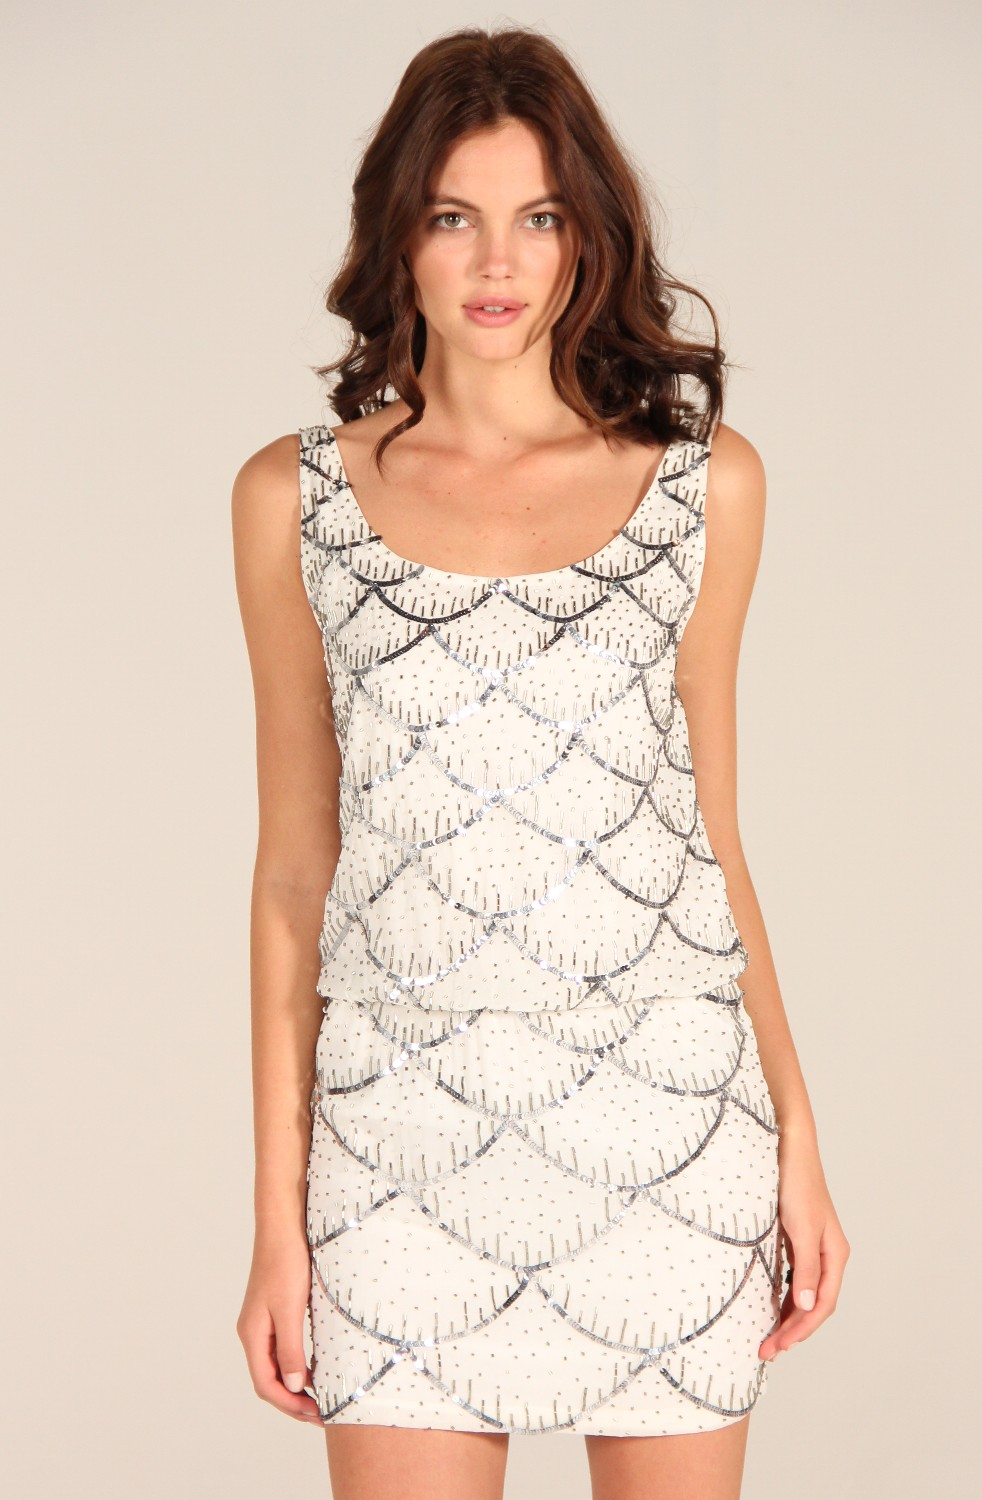 Sequin Dress by &ltI&gtNicole Miller&lt/I&gt